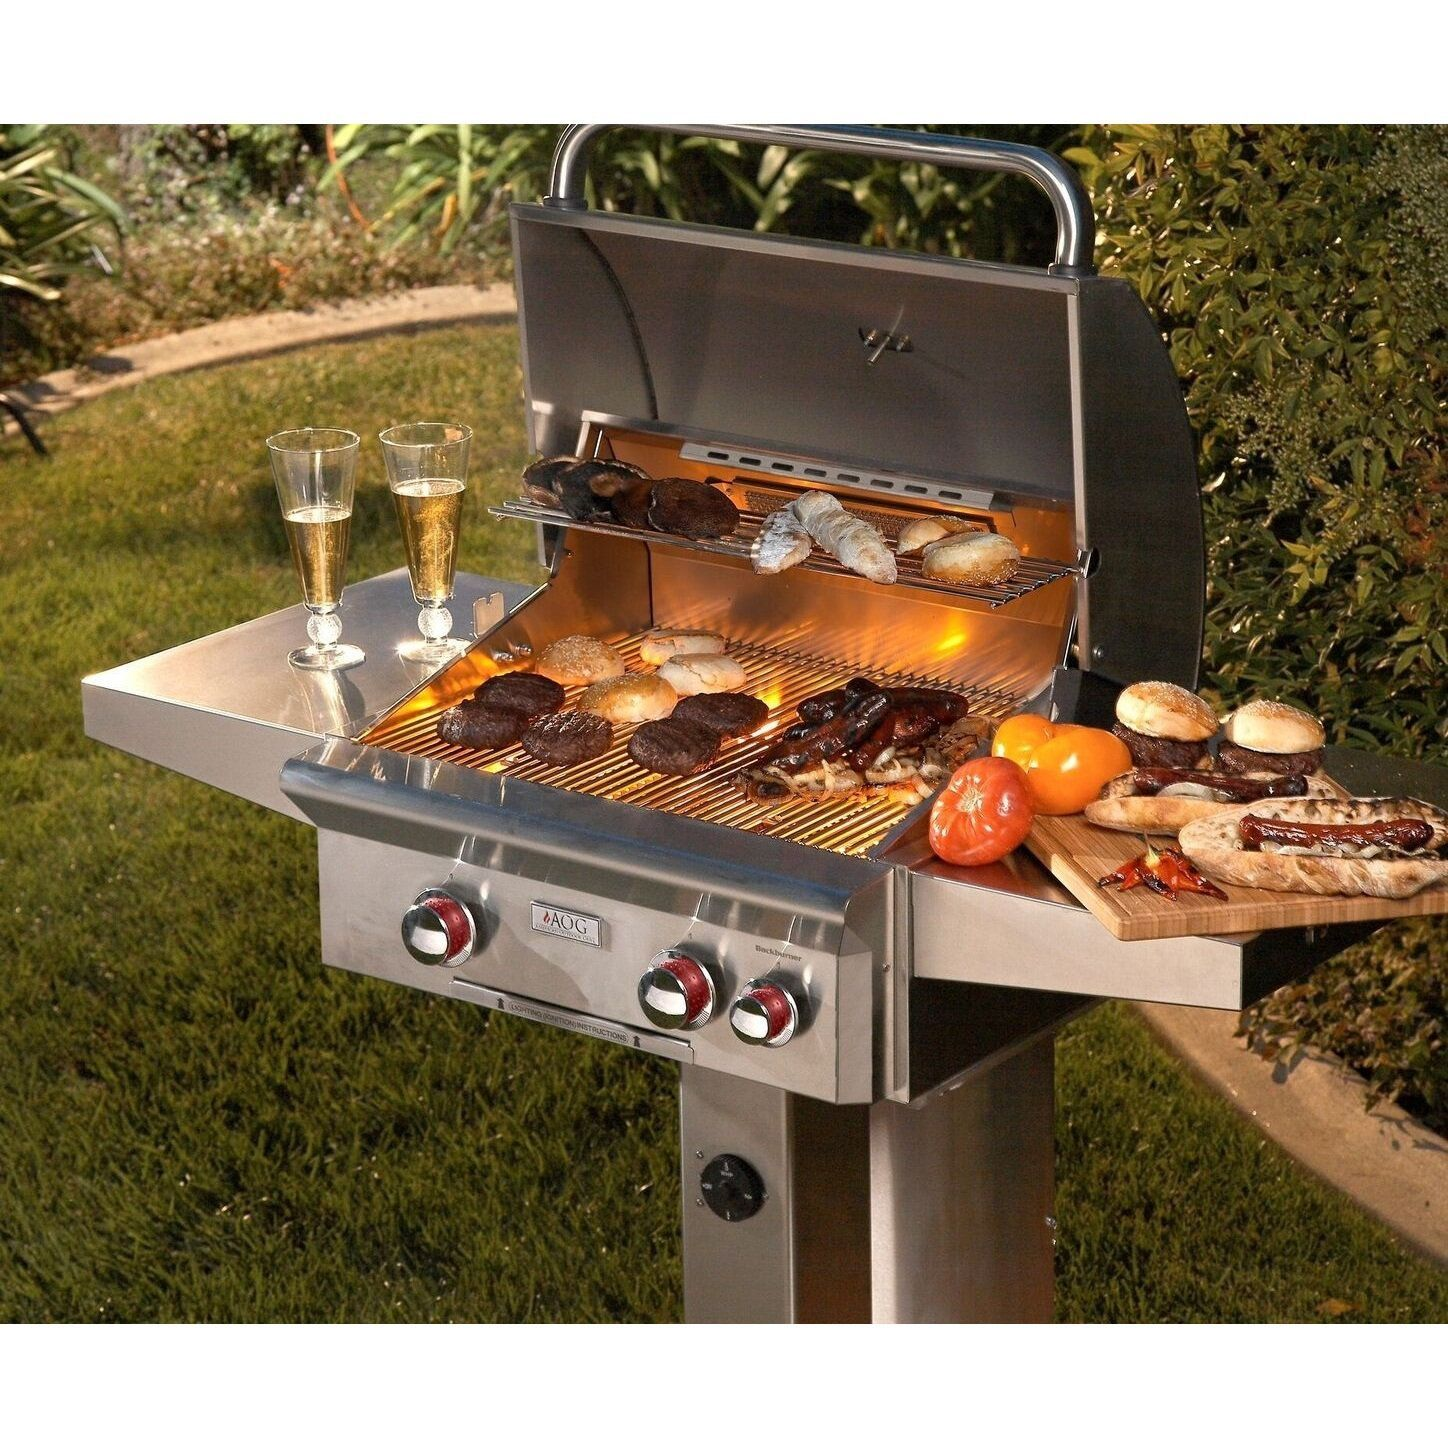 American Outdoor Grill 24 Inch T Series In Ground Post Grill With Rotisserie Natural Gas Grey Stainles Outdoor Grill Outdoor Cooking Area Natural Gas Grill